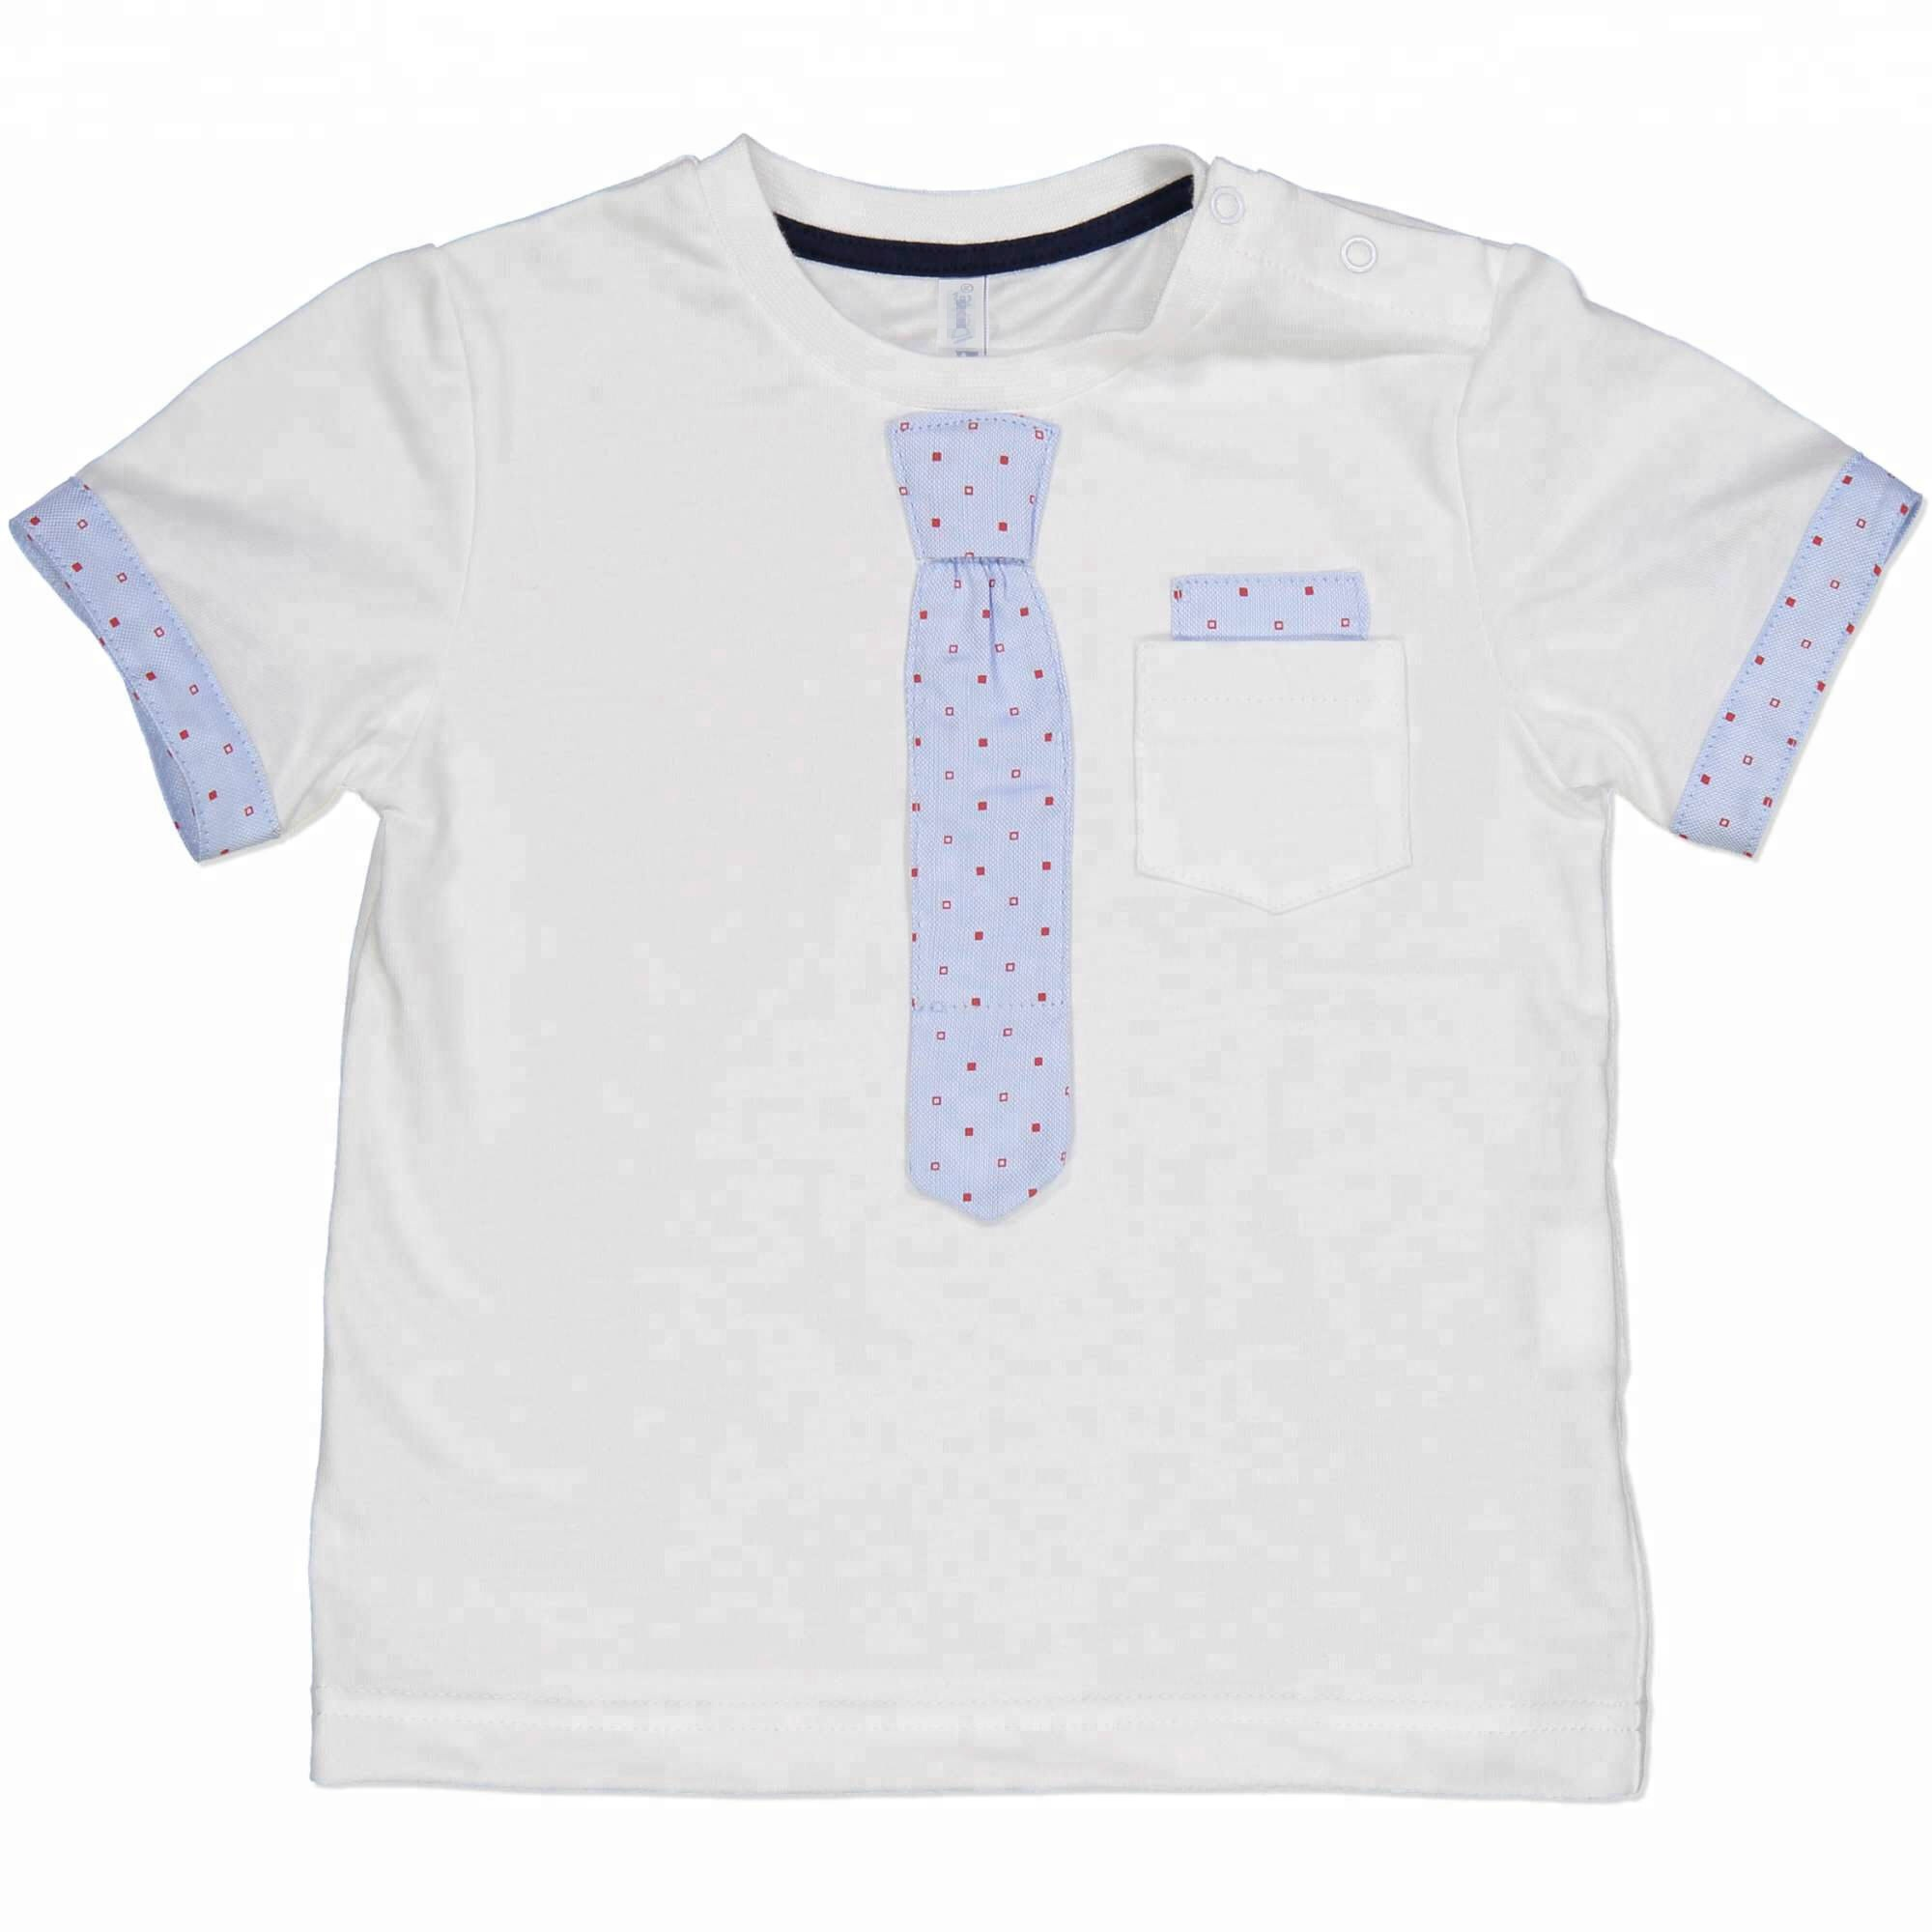 Fashion Kids Kleding Baby Boy T-shirts met Valse Stropdas